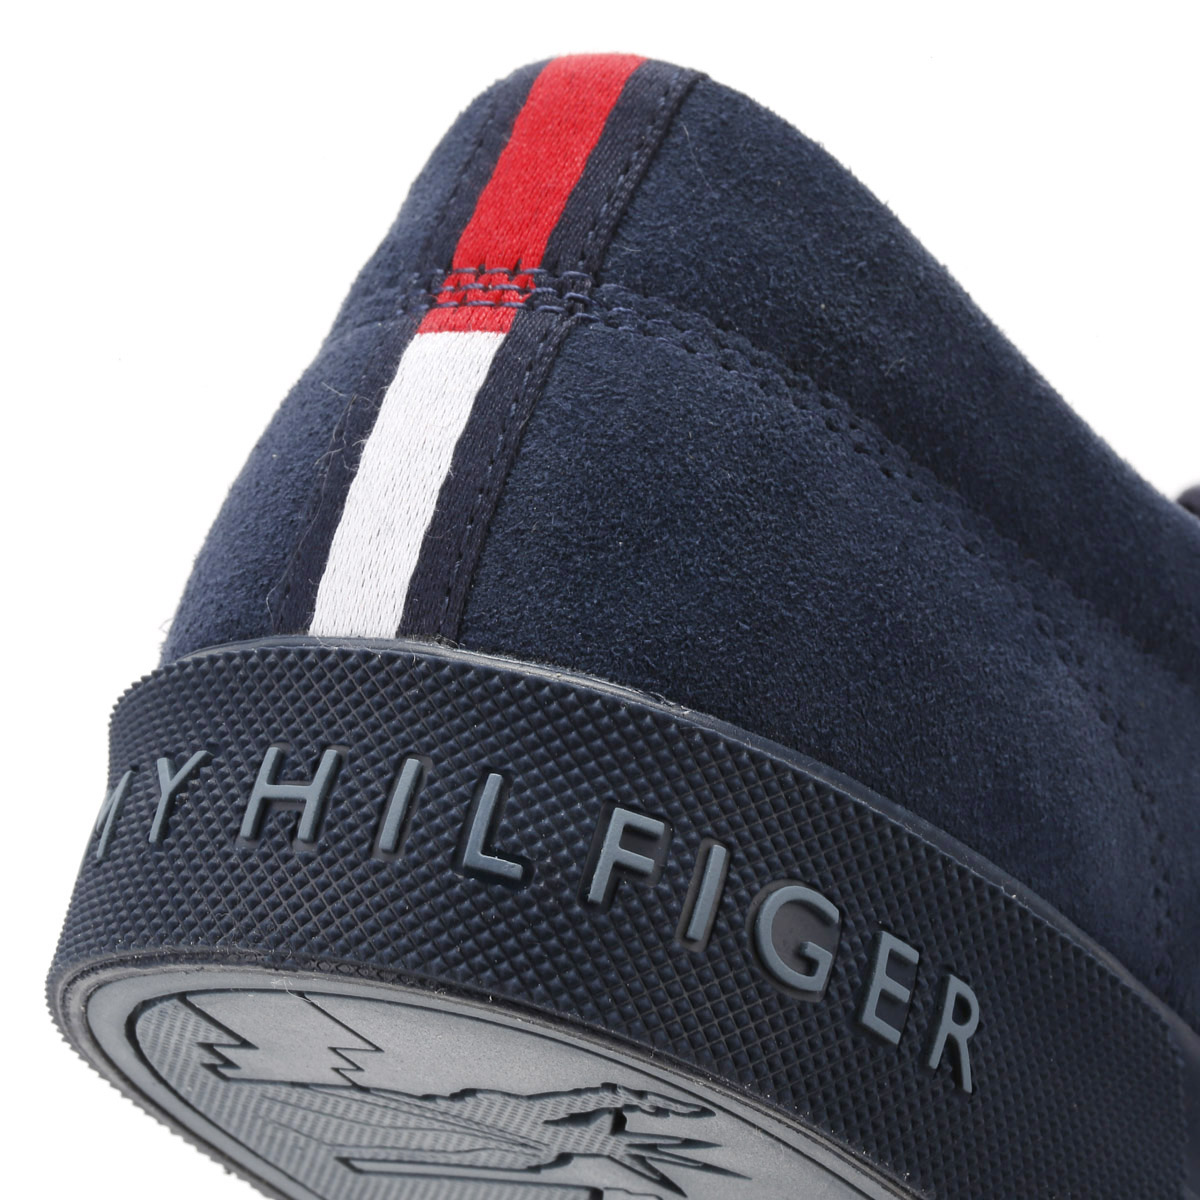 Tommy hilfiger mens navy blue suede trainers lace up sport shoes tommy hilfiger mens navy blue suede trainers lace publicscrutiny Choice Image